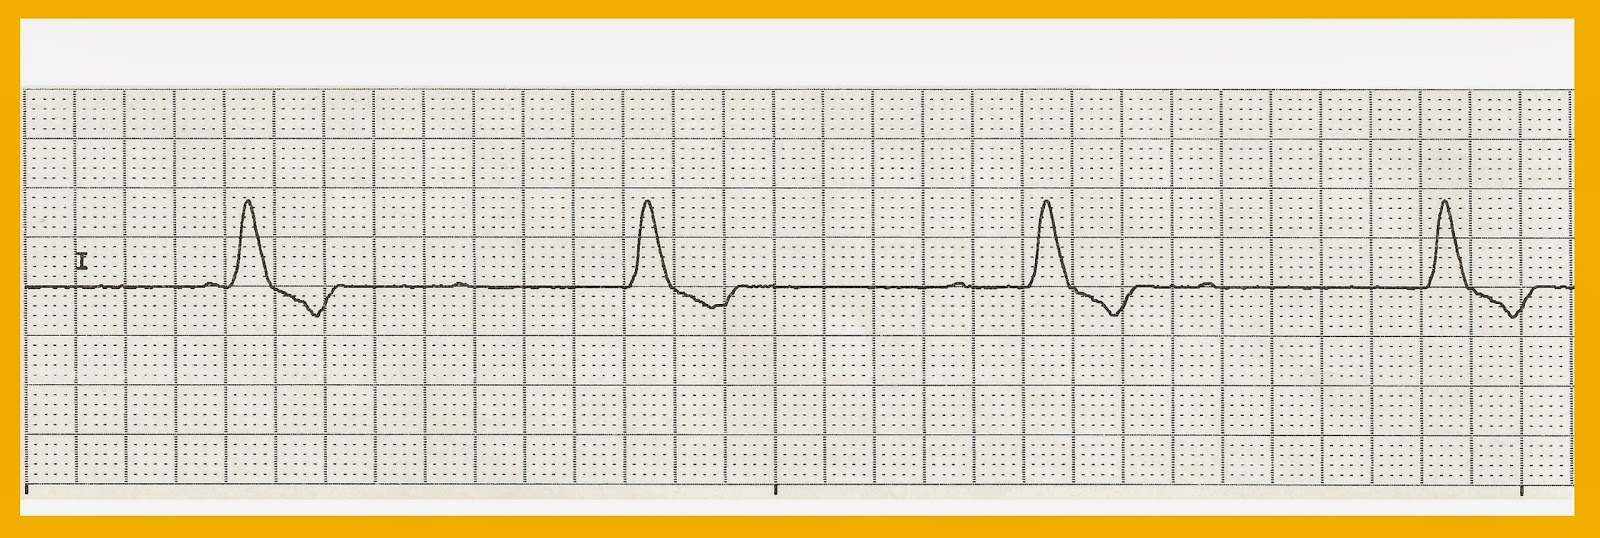 graphic regarding Ekg Practice Strips Printable identify Cardiac Strips Shots - Opposite Glimpse